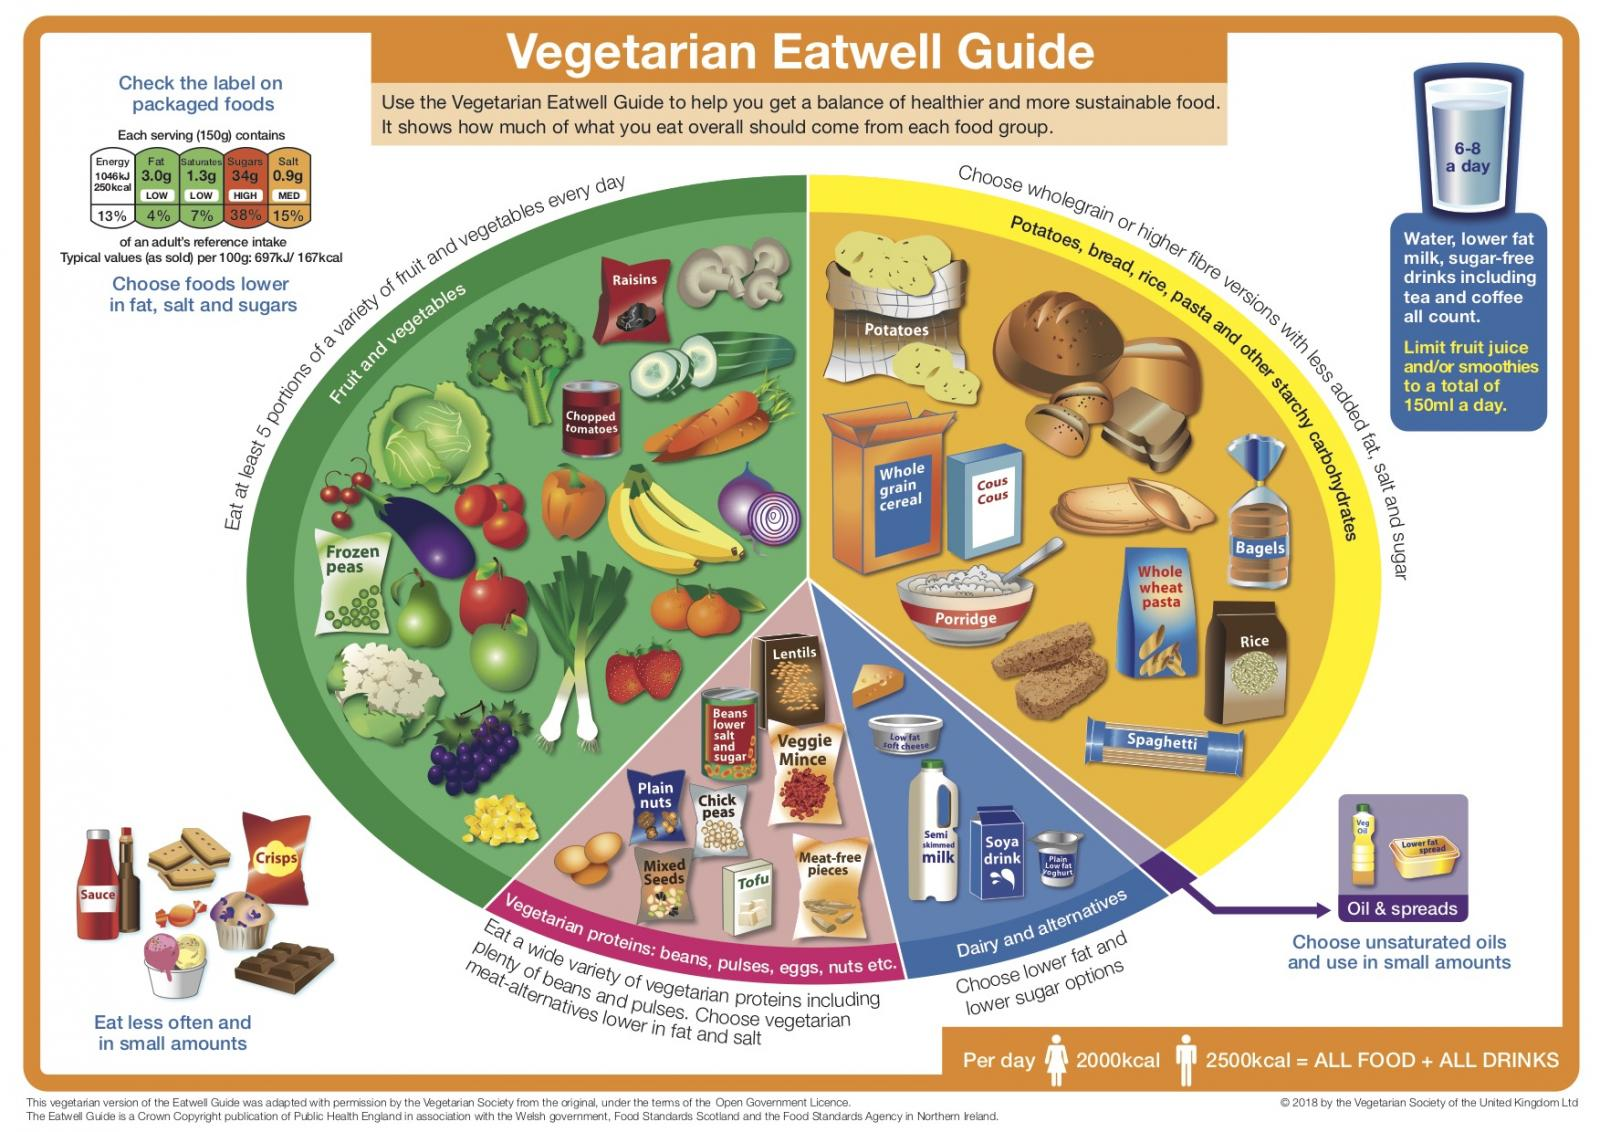 The Vegetarian Eatwell Guide. Photo credit: The Vegetarian Society